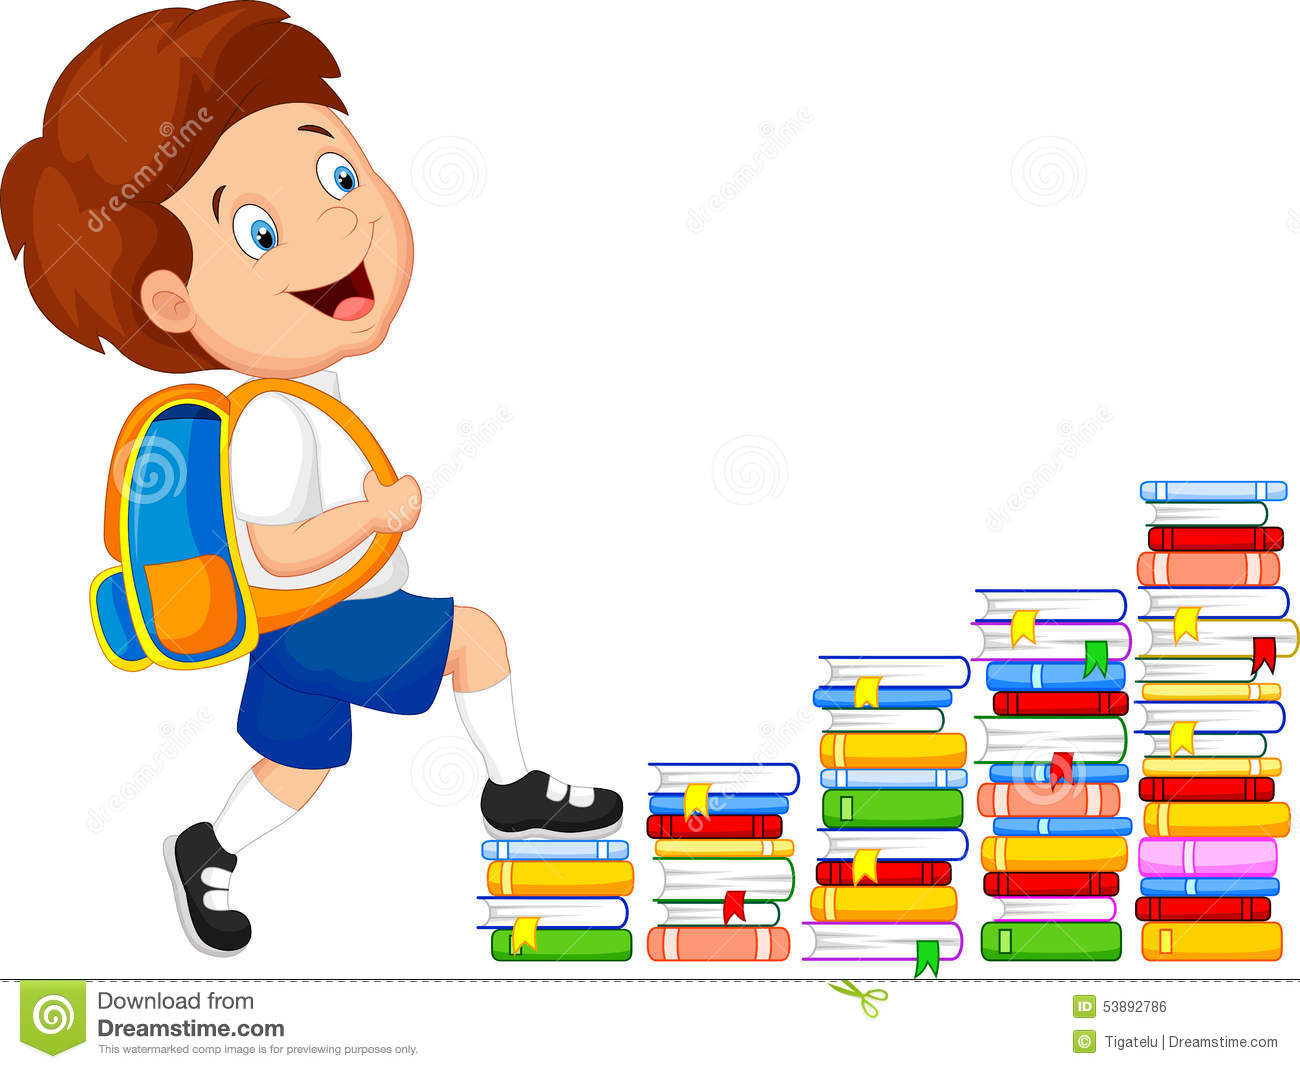 child climbing stock illustrations – 1,082 child climbing stock